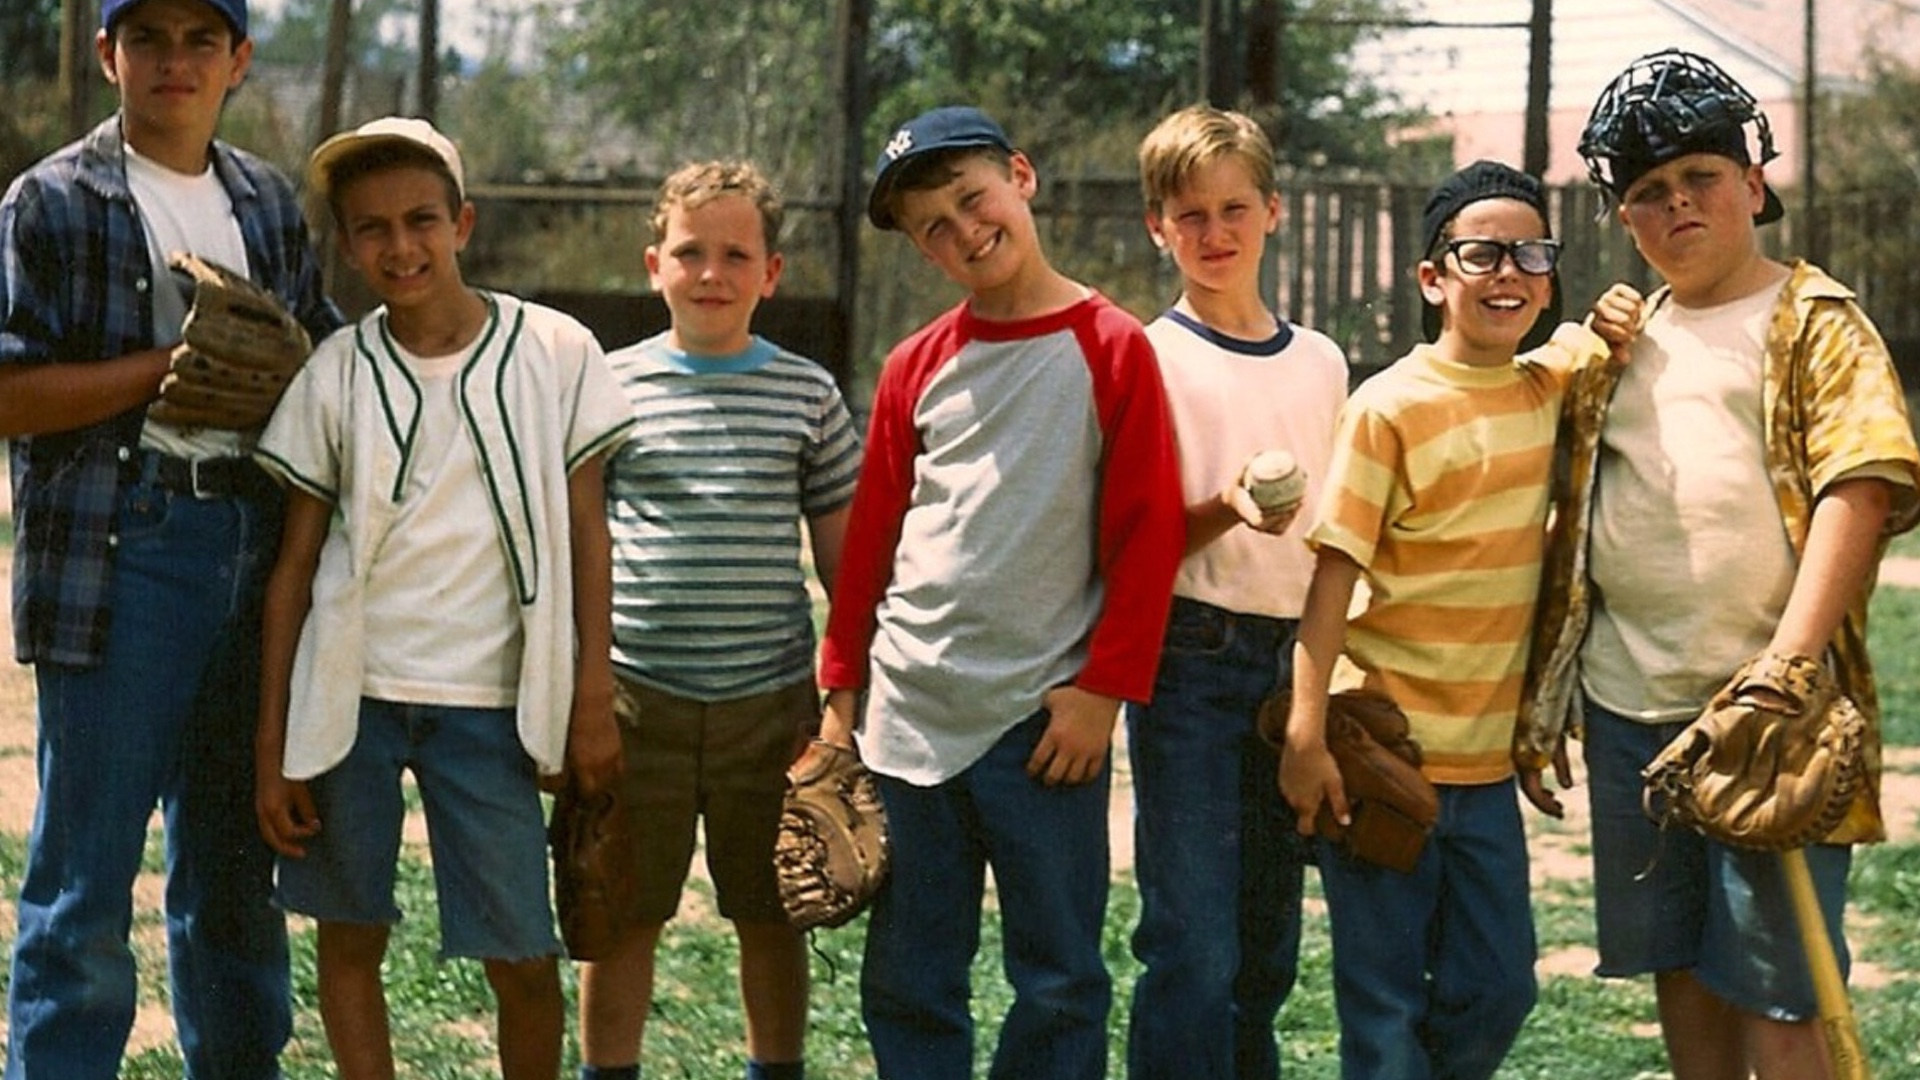 There's a SANDLOT Sequel Series in Development Set in the